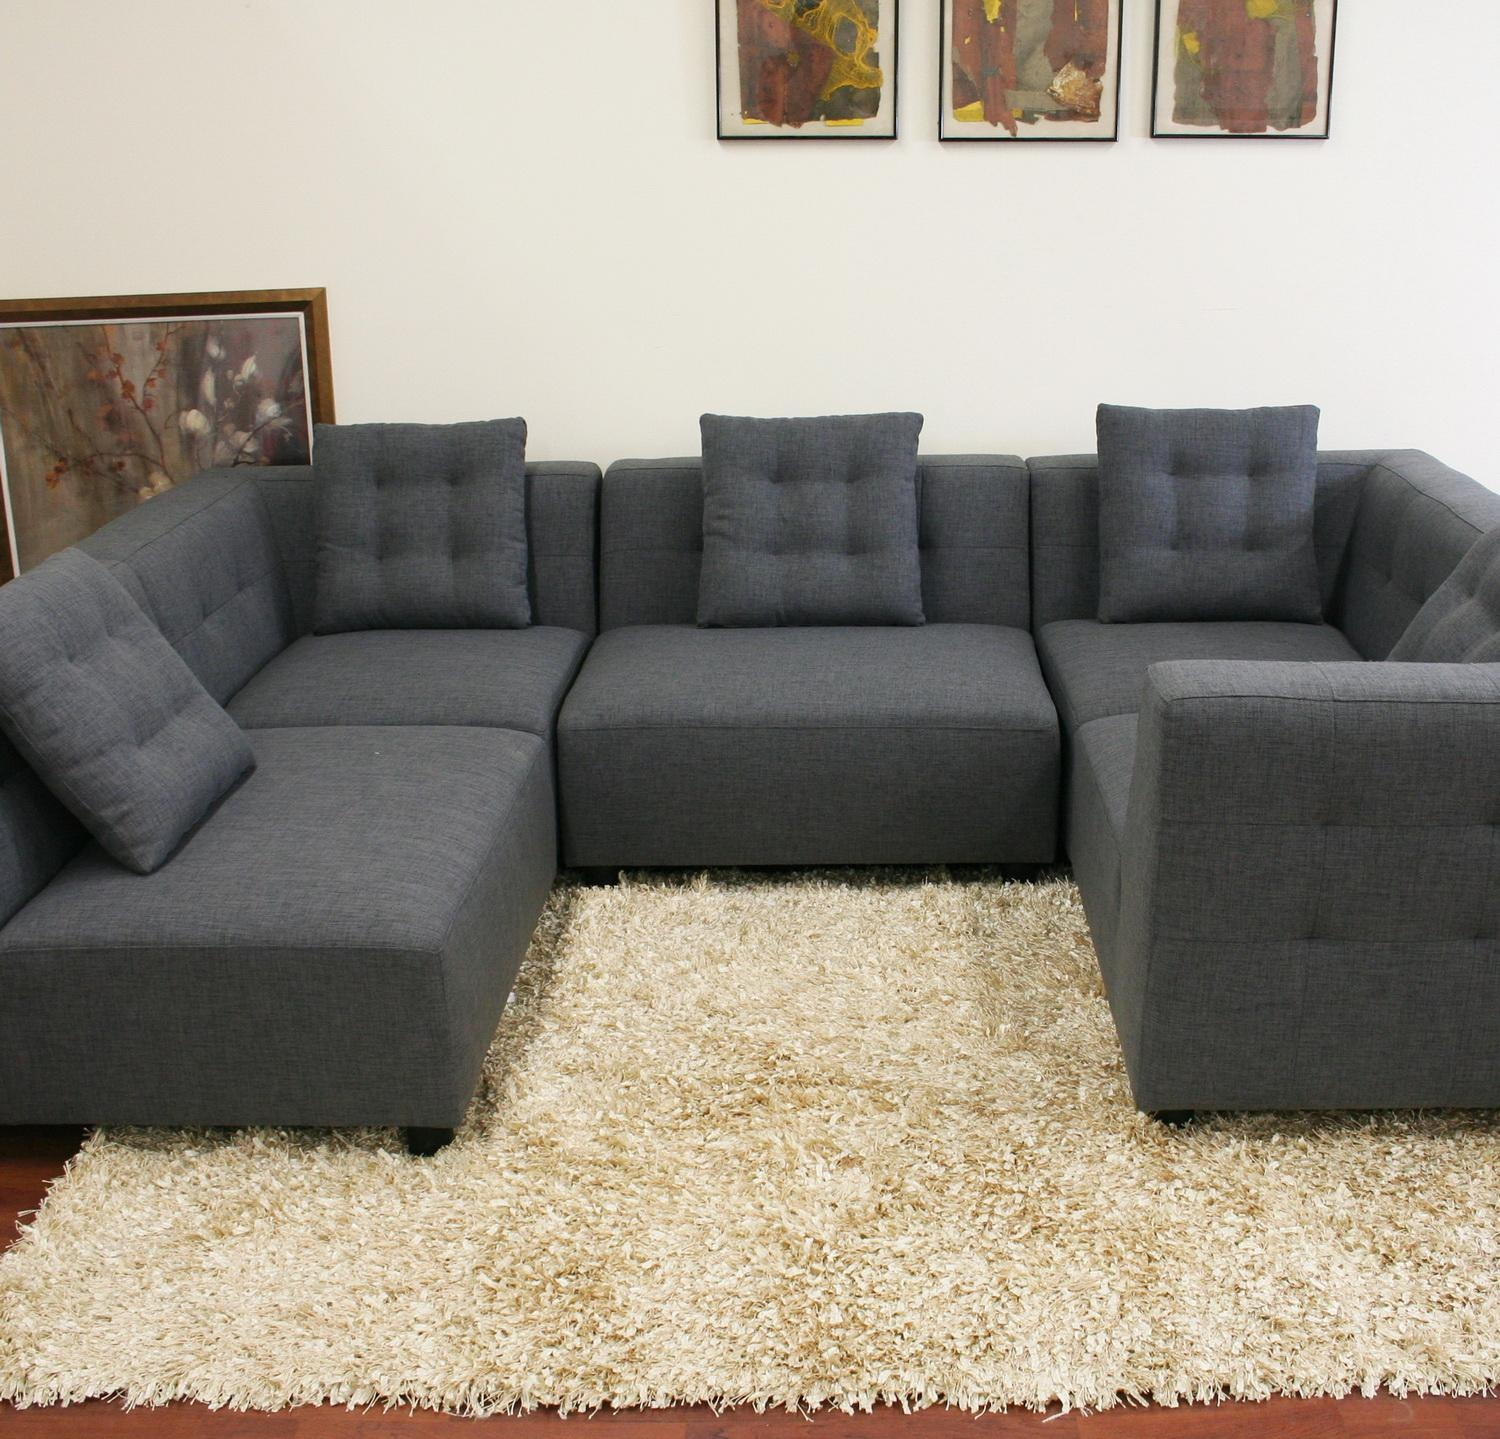 Interior: Gorgeous Lady Charcoal Sectional For Living Room Throughout Charcoal Gray Sectional Sofas (View 14 of 20)